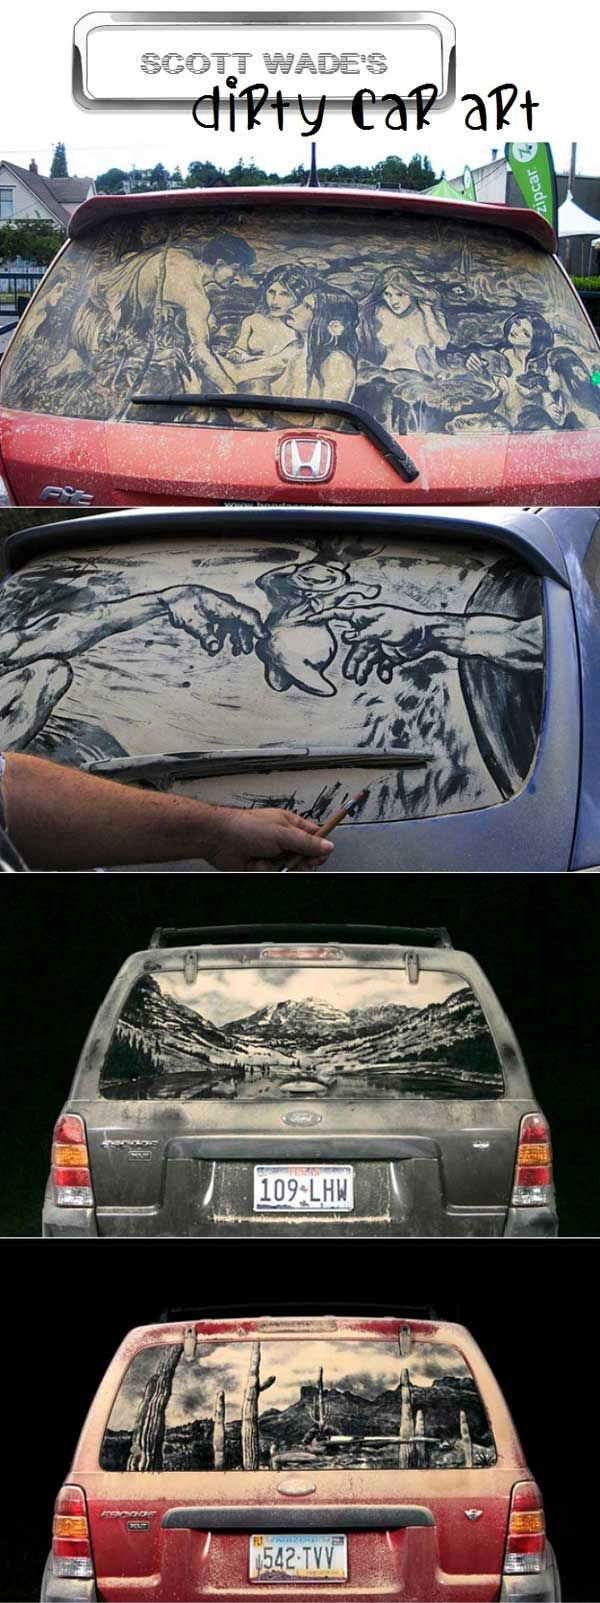 Best Dirty Car Art Images On Pinterest Car Painting Lwren - Scott wade makes wonderful art dusty car windows